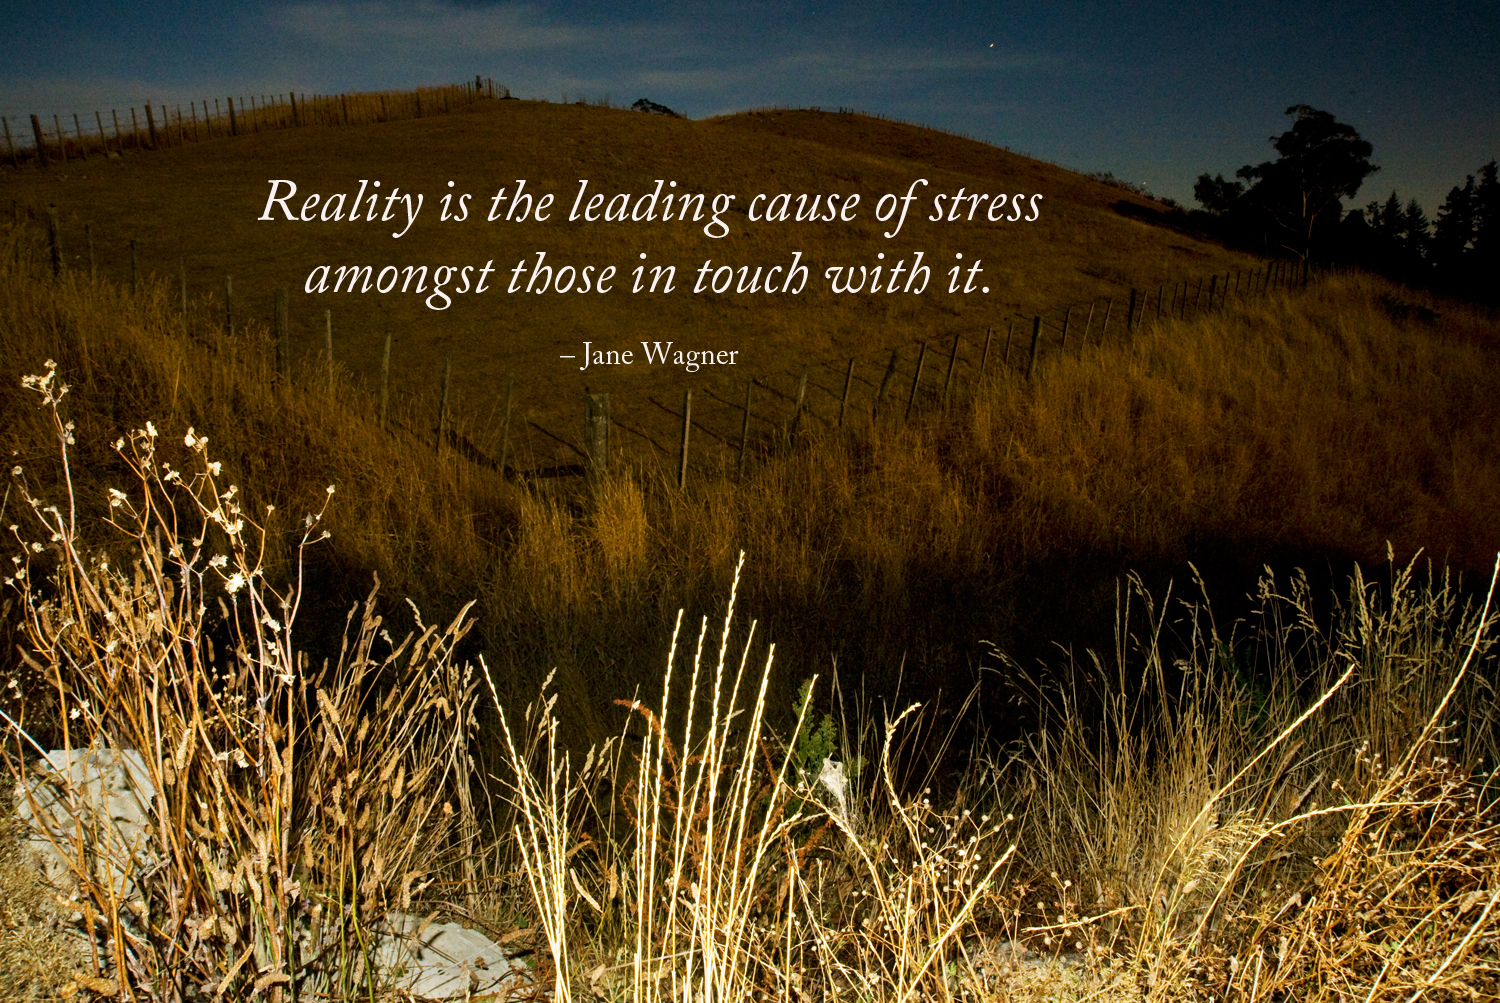 Reality is the leading cause of stress